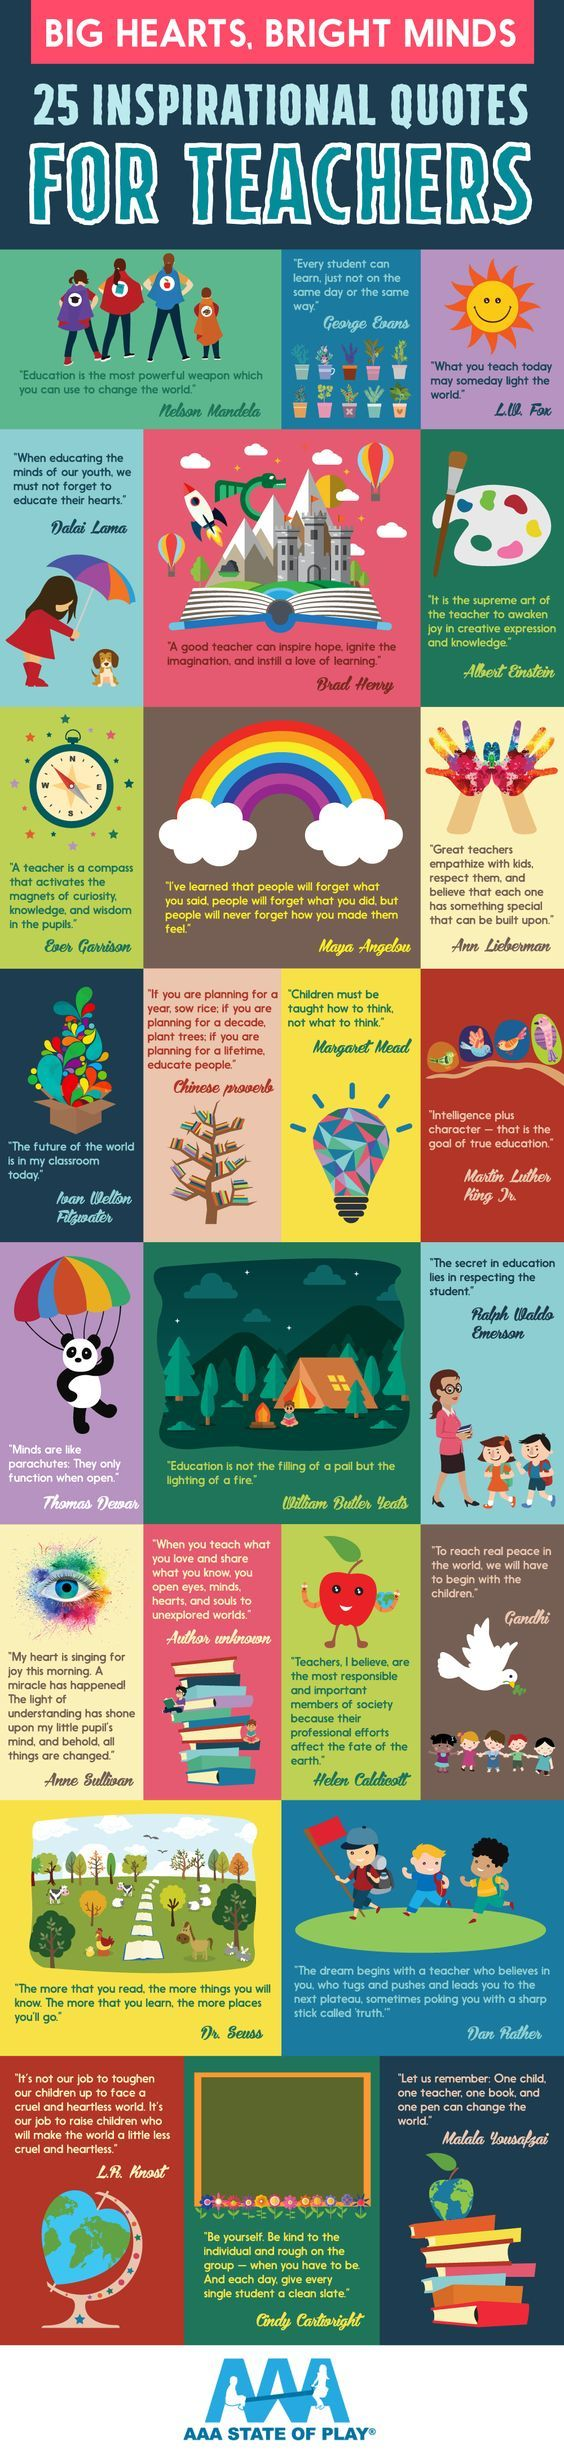 Big Hearts, Bright Minds: 25 Inspirational Quotes for Teachers #Infographic #Education #Quotes Más